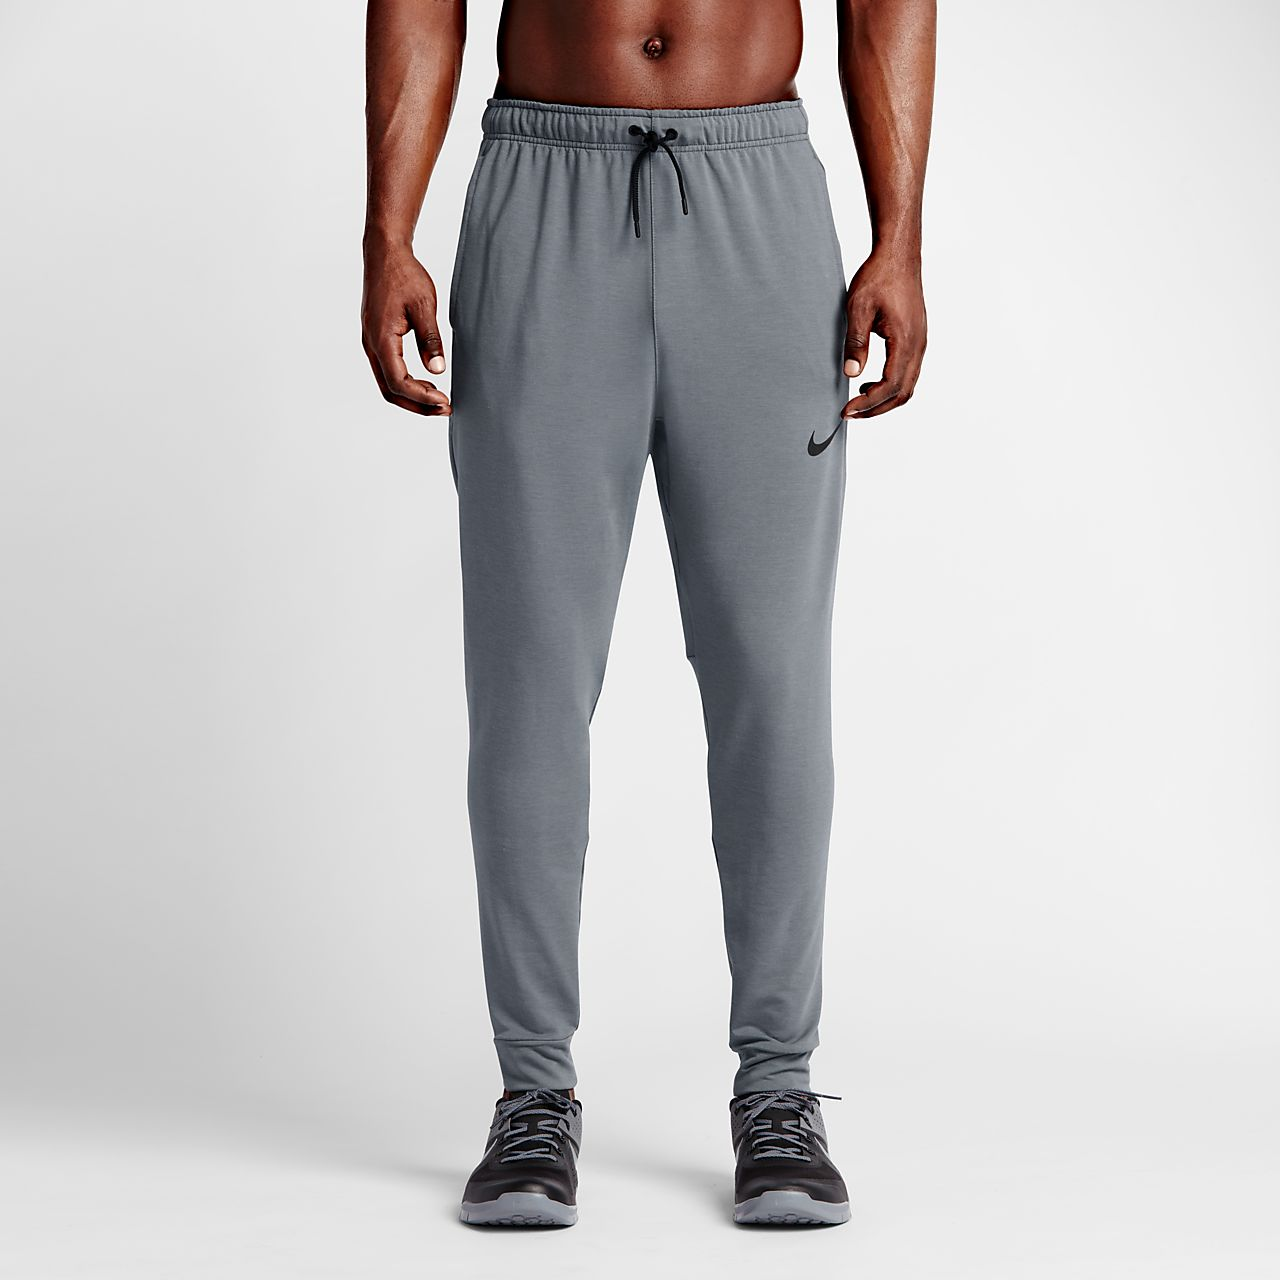 Nike Dri-FIT Fleece Men's Training Trousers